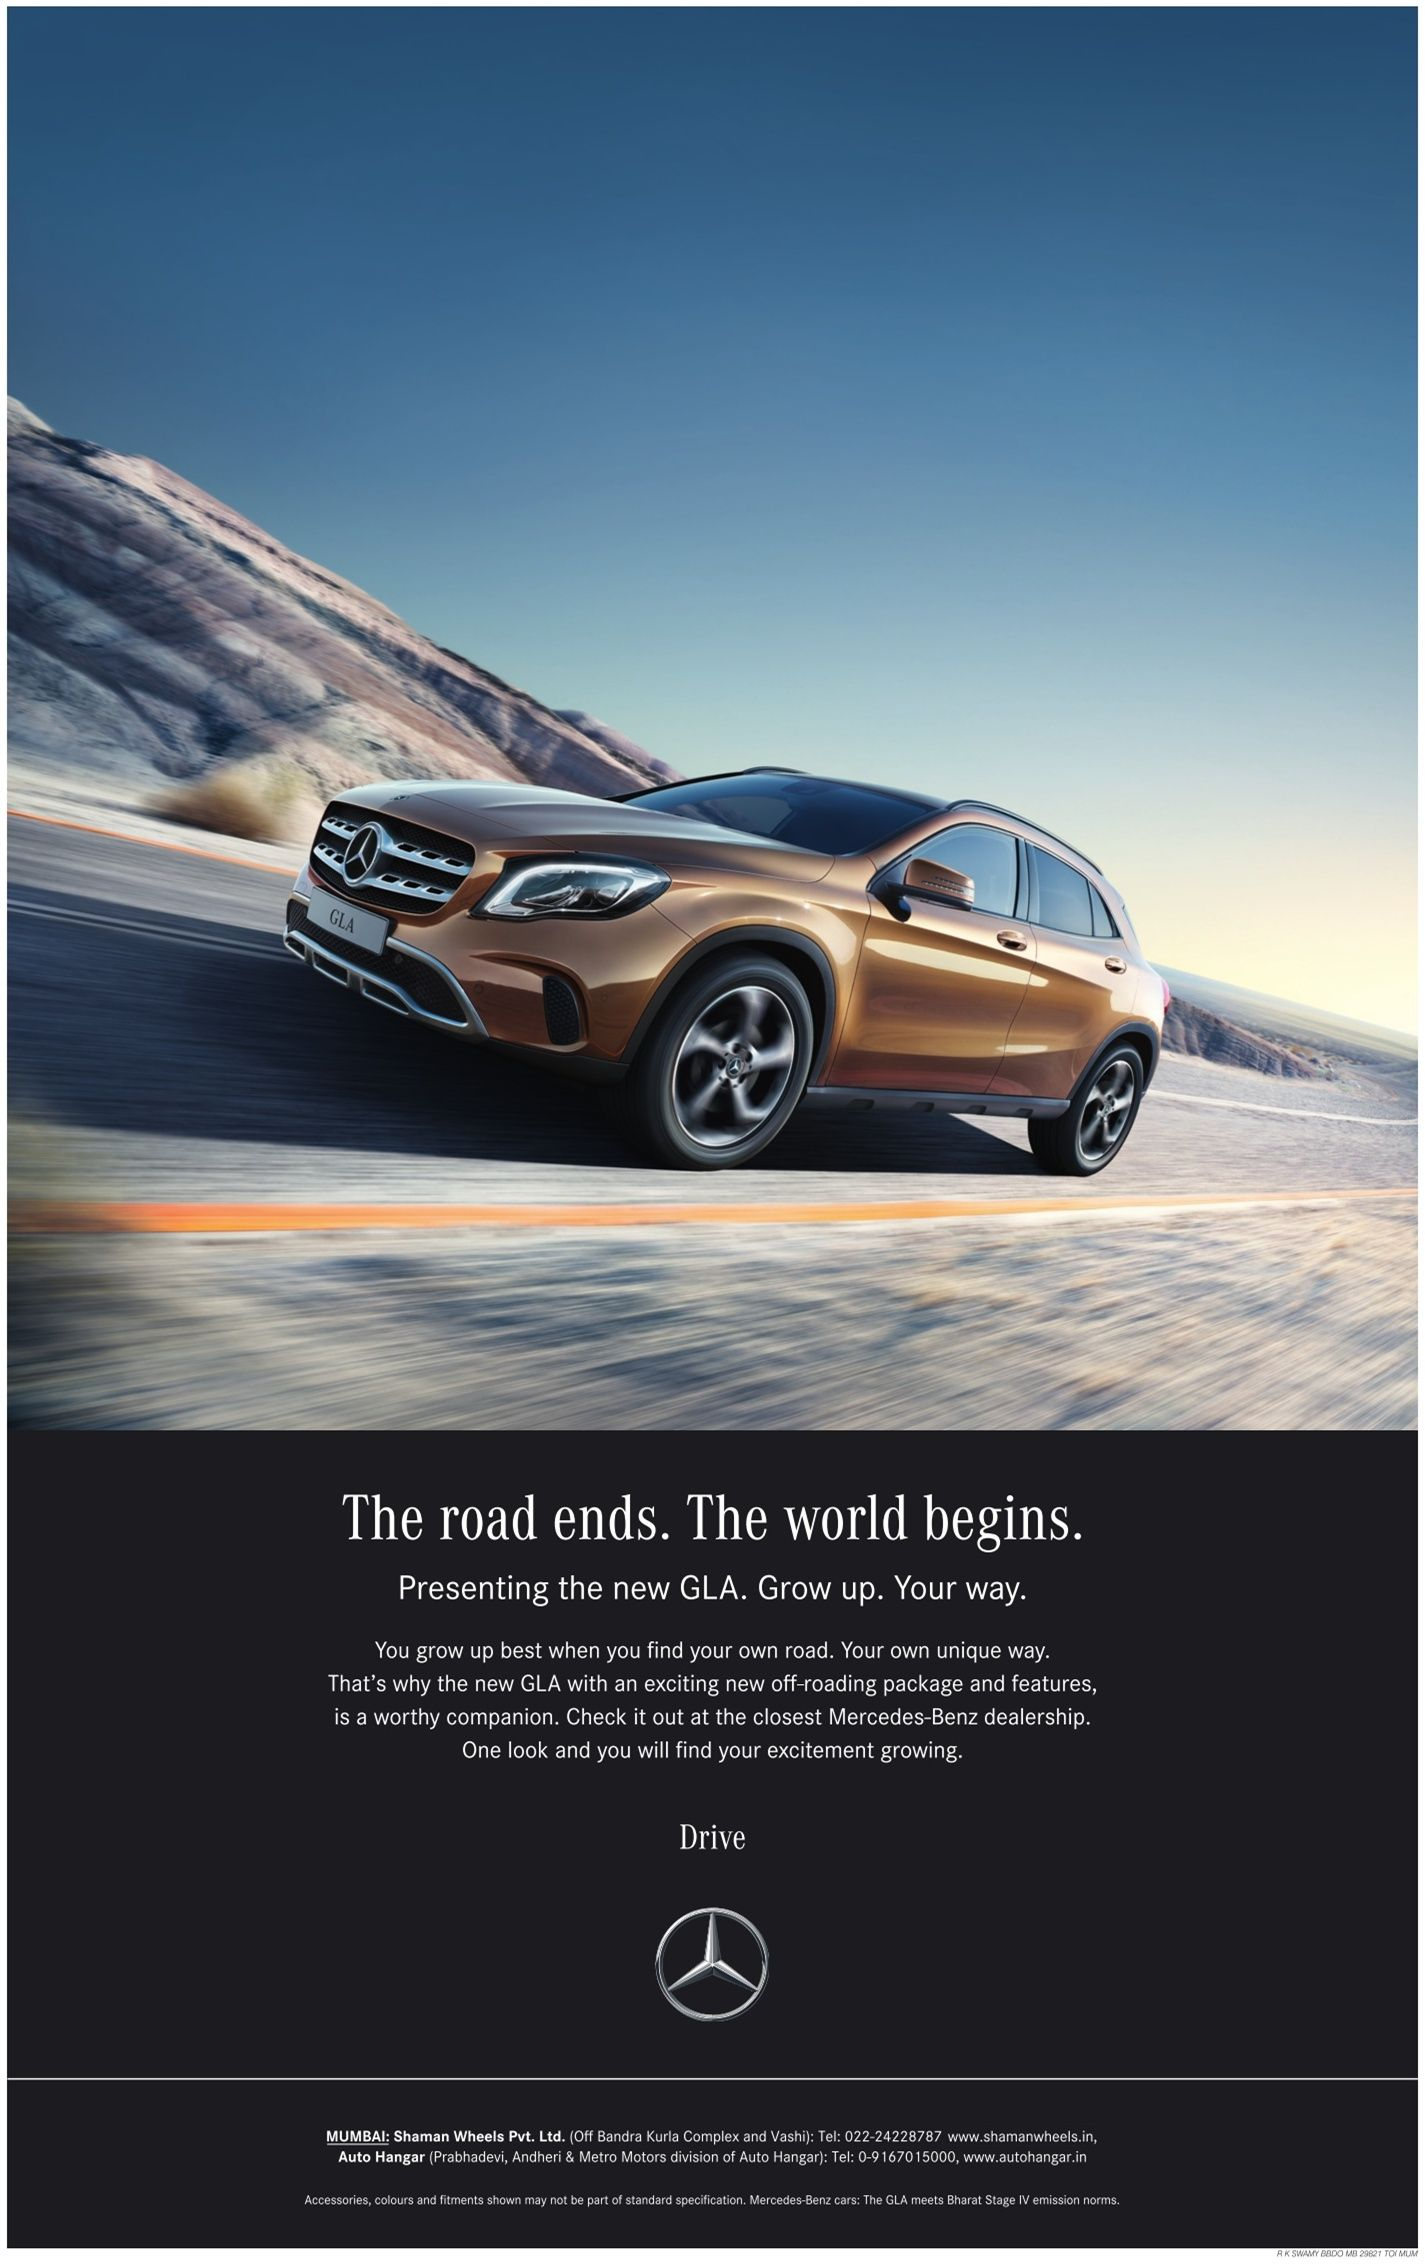 Mercedes Benz Dealers >> Pin By Advert Gallery On Car Advertisements Mercedes Benz